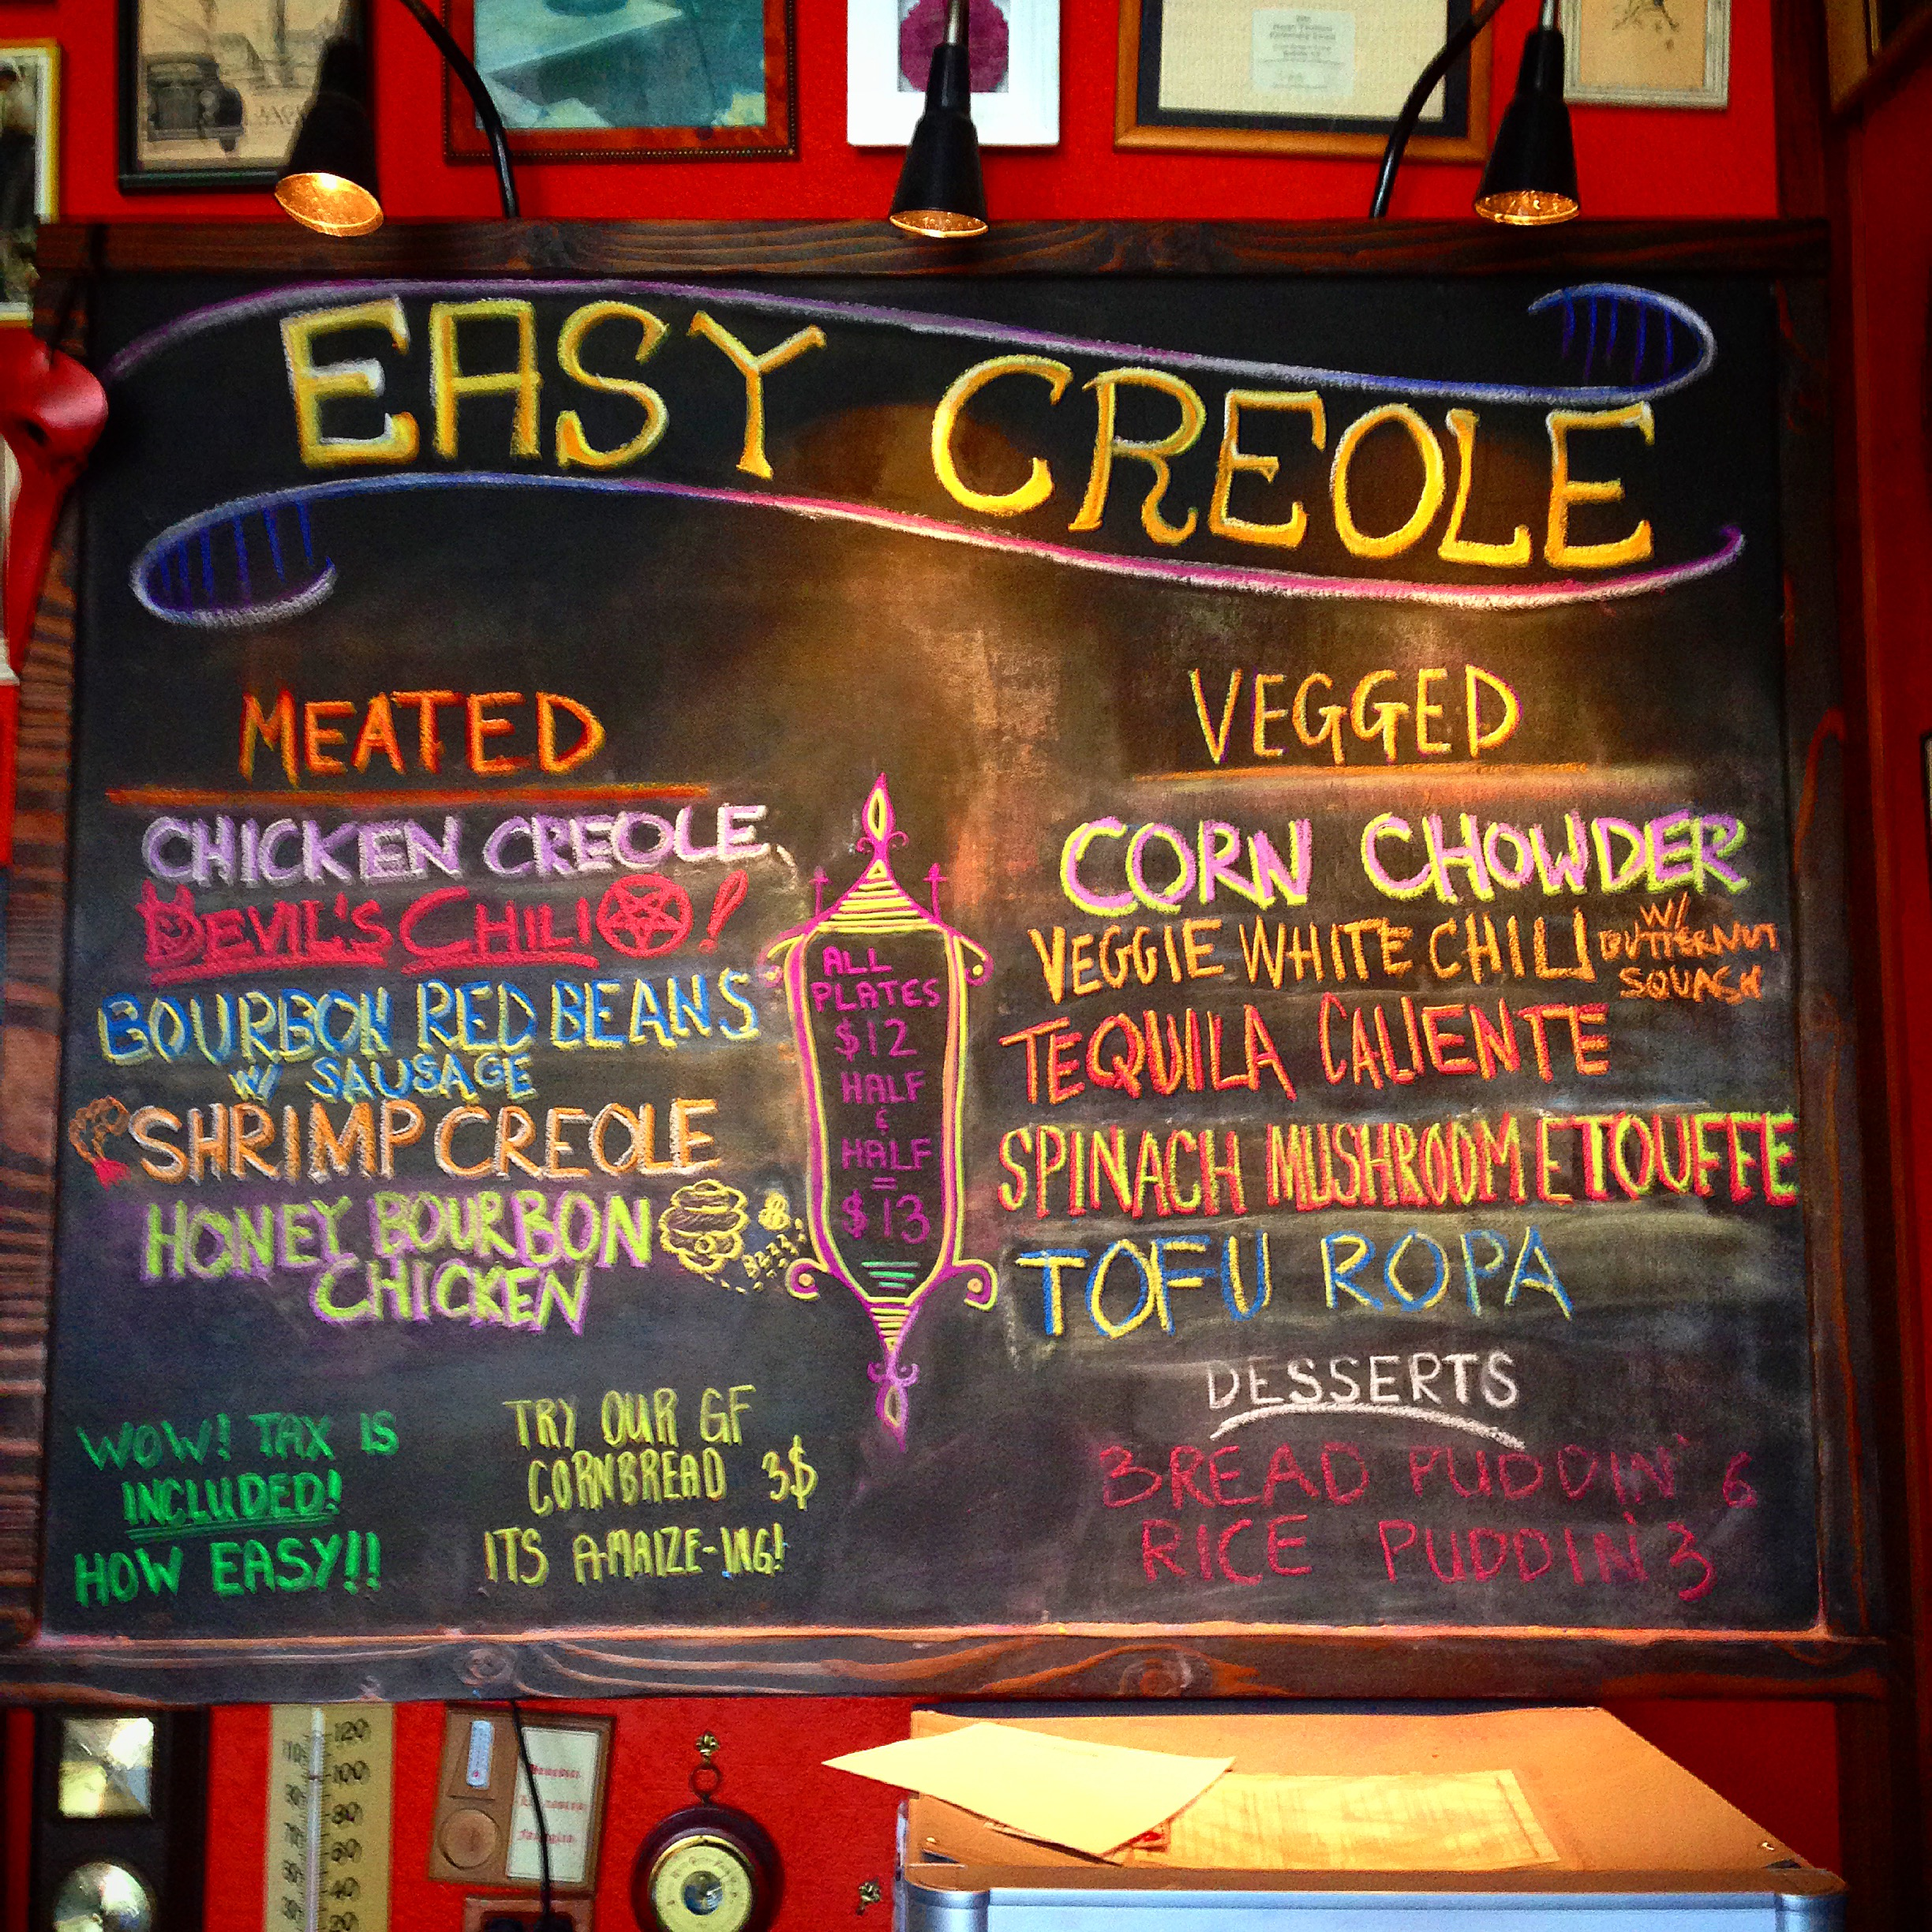 What a better way to start the day than with a plate of wholesome food and the friendly faces of the heartwarming folks at Easy Creole?